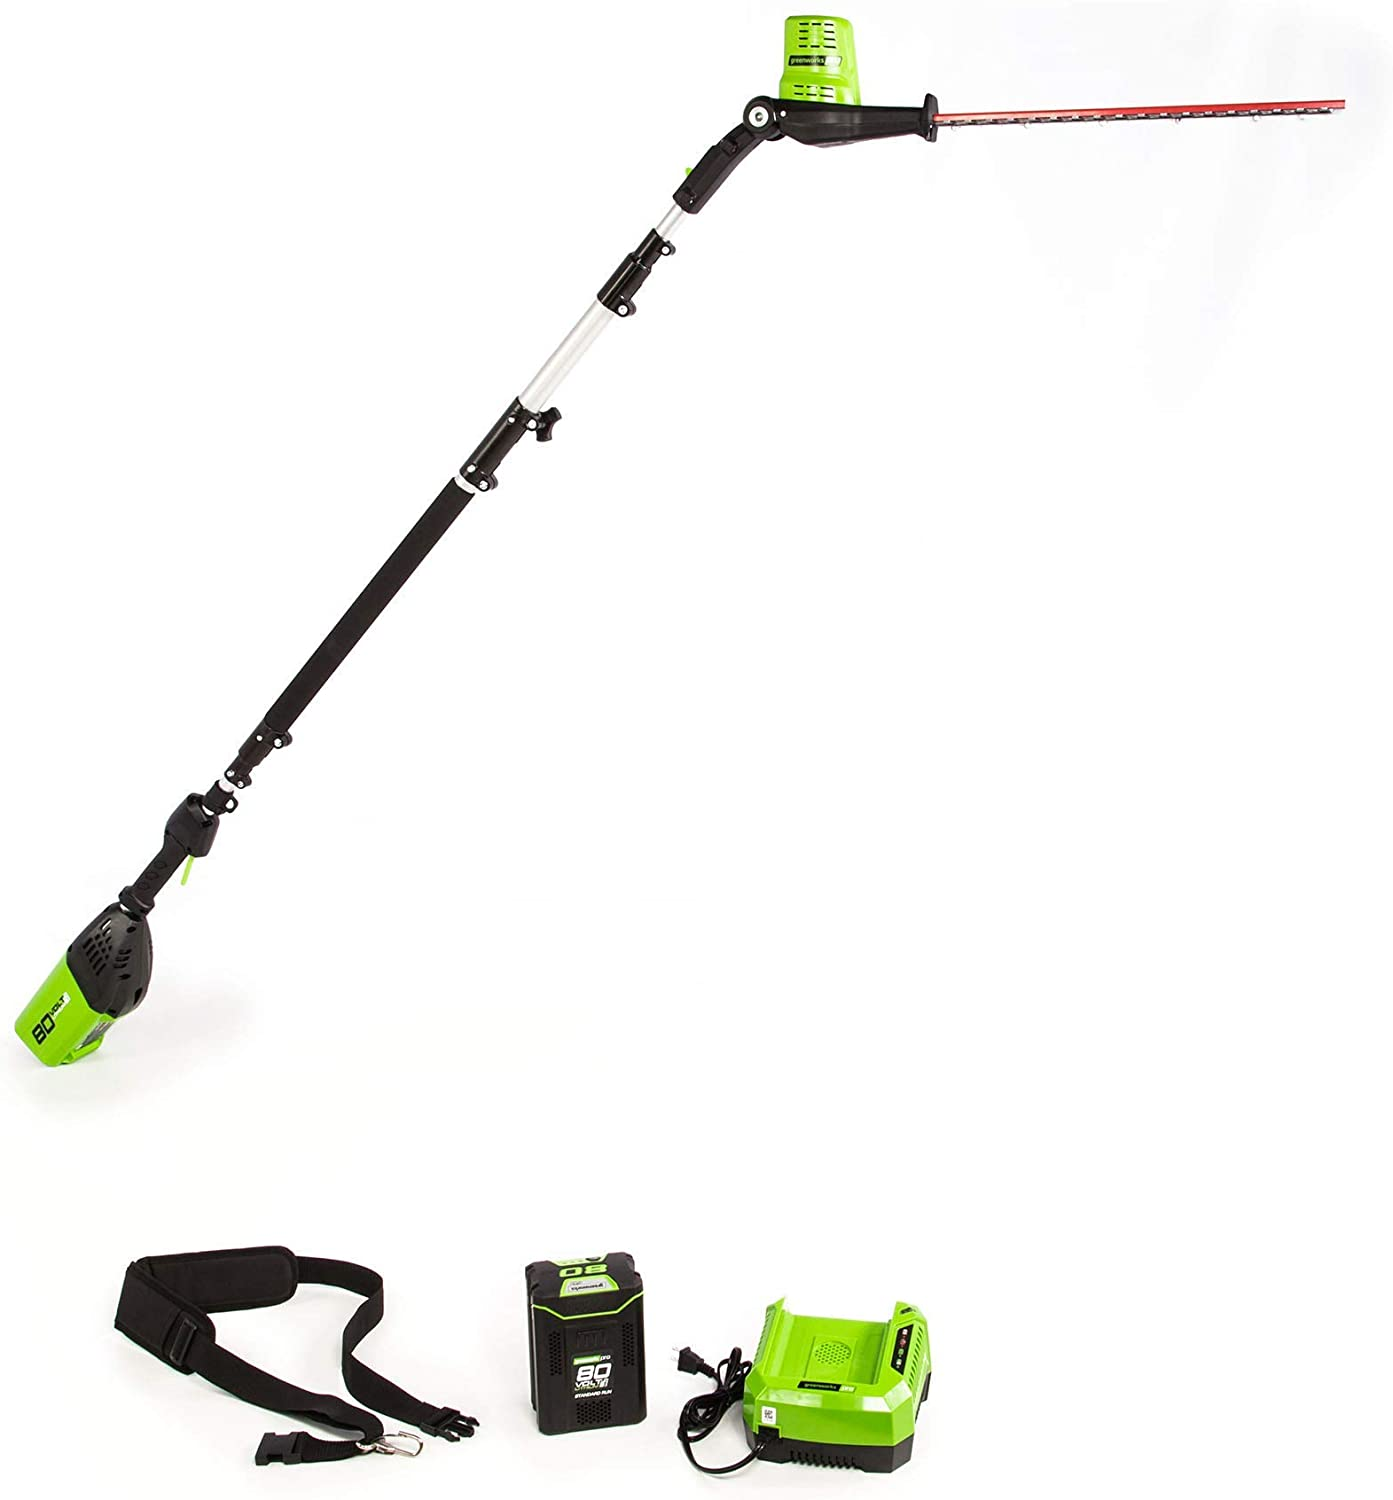 National products Max 57% OFF Greenworks 80V 20 inch Cordless PH80B210 Re Hedge Trimmer Pole